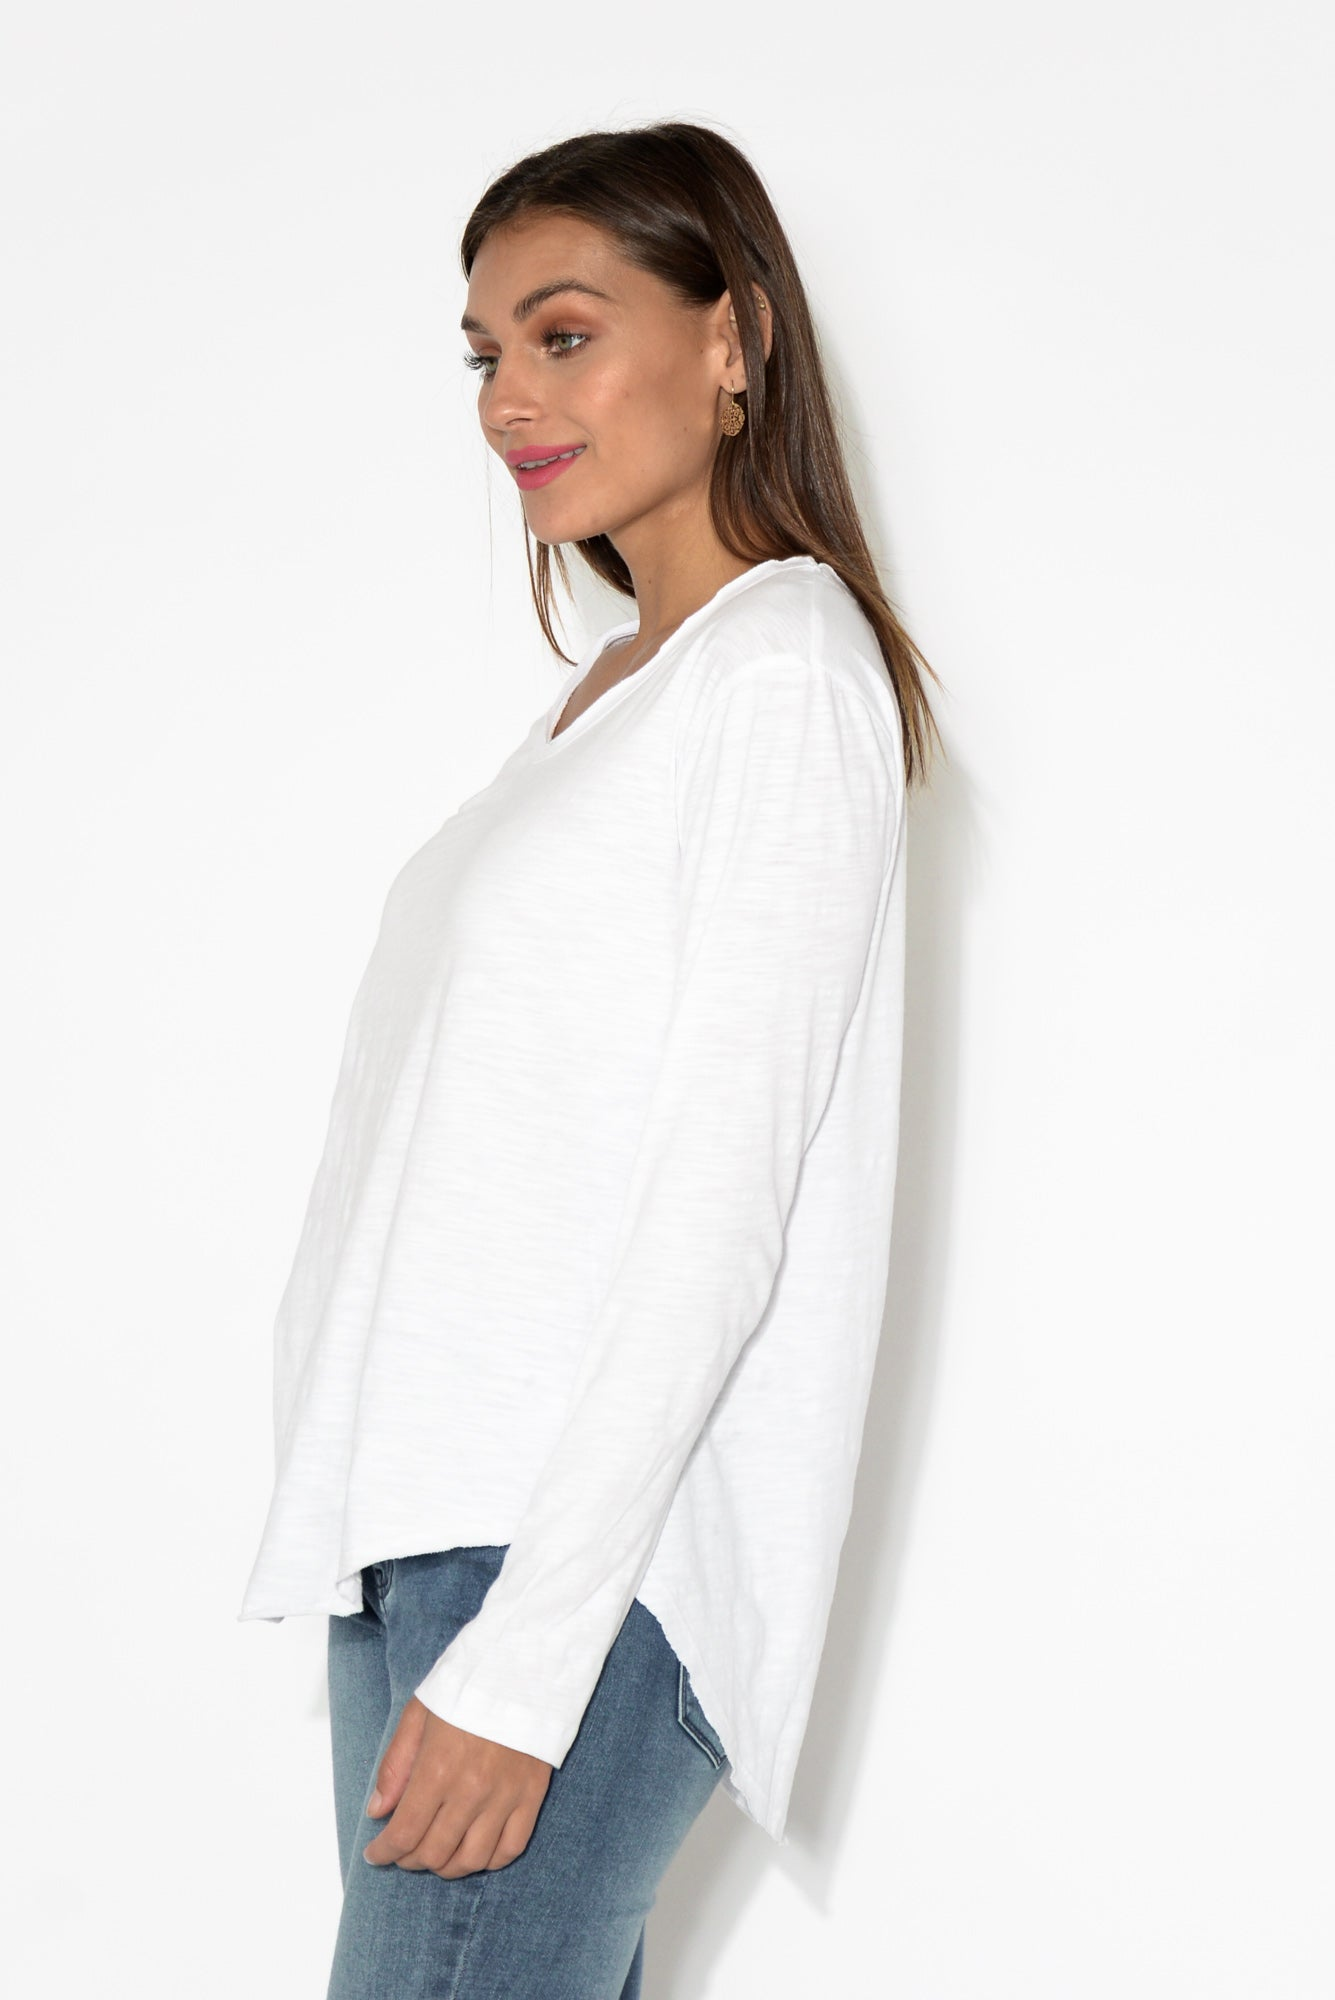 Portsea White Cotton Long Sleeve Top